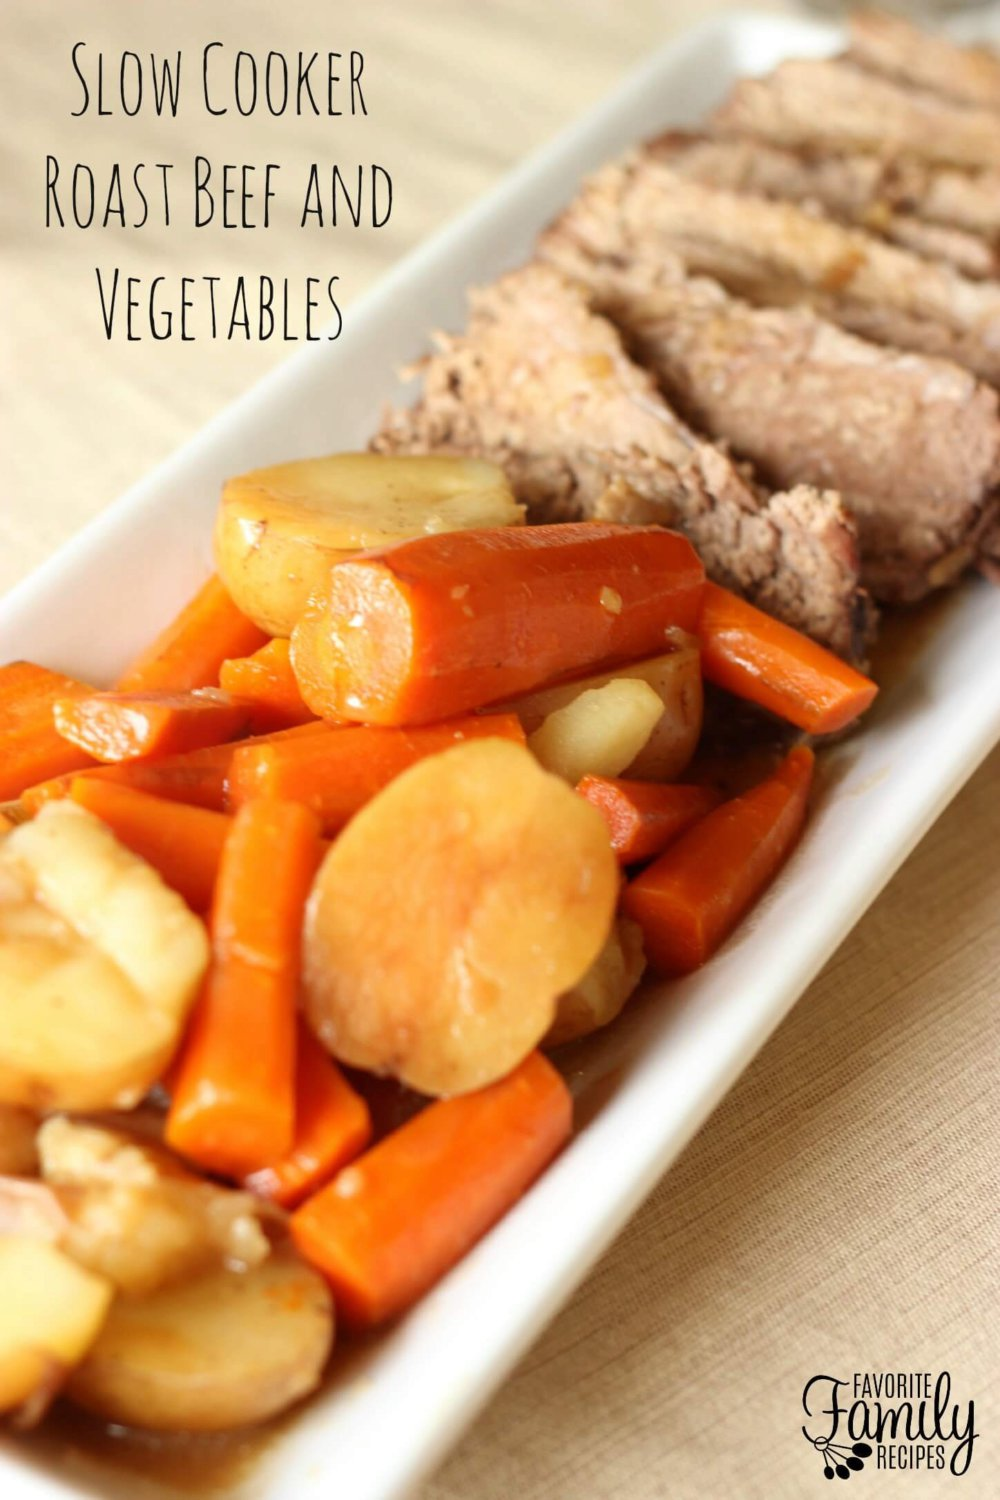 Slow Cooker Roast Beef and Vegetables